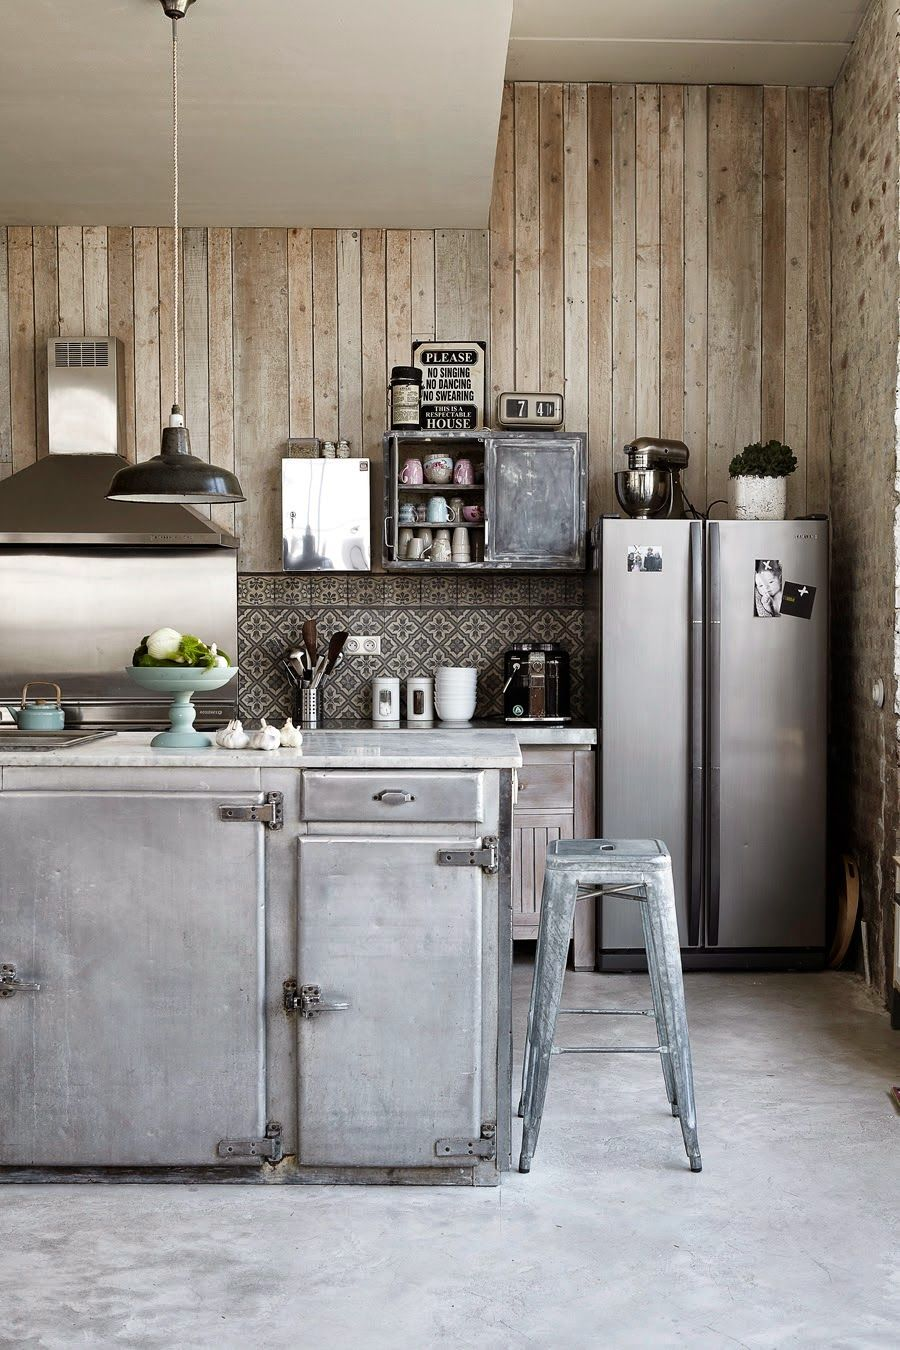 Home interior design kitchen kitchen fanny och pascal françoisu home in a old waffle factory